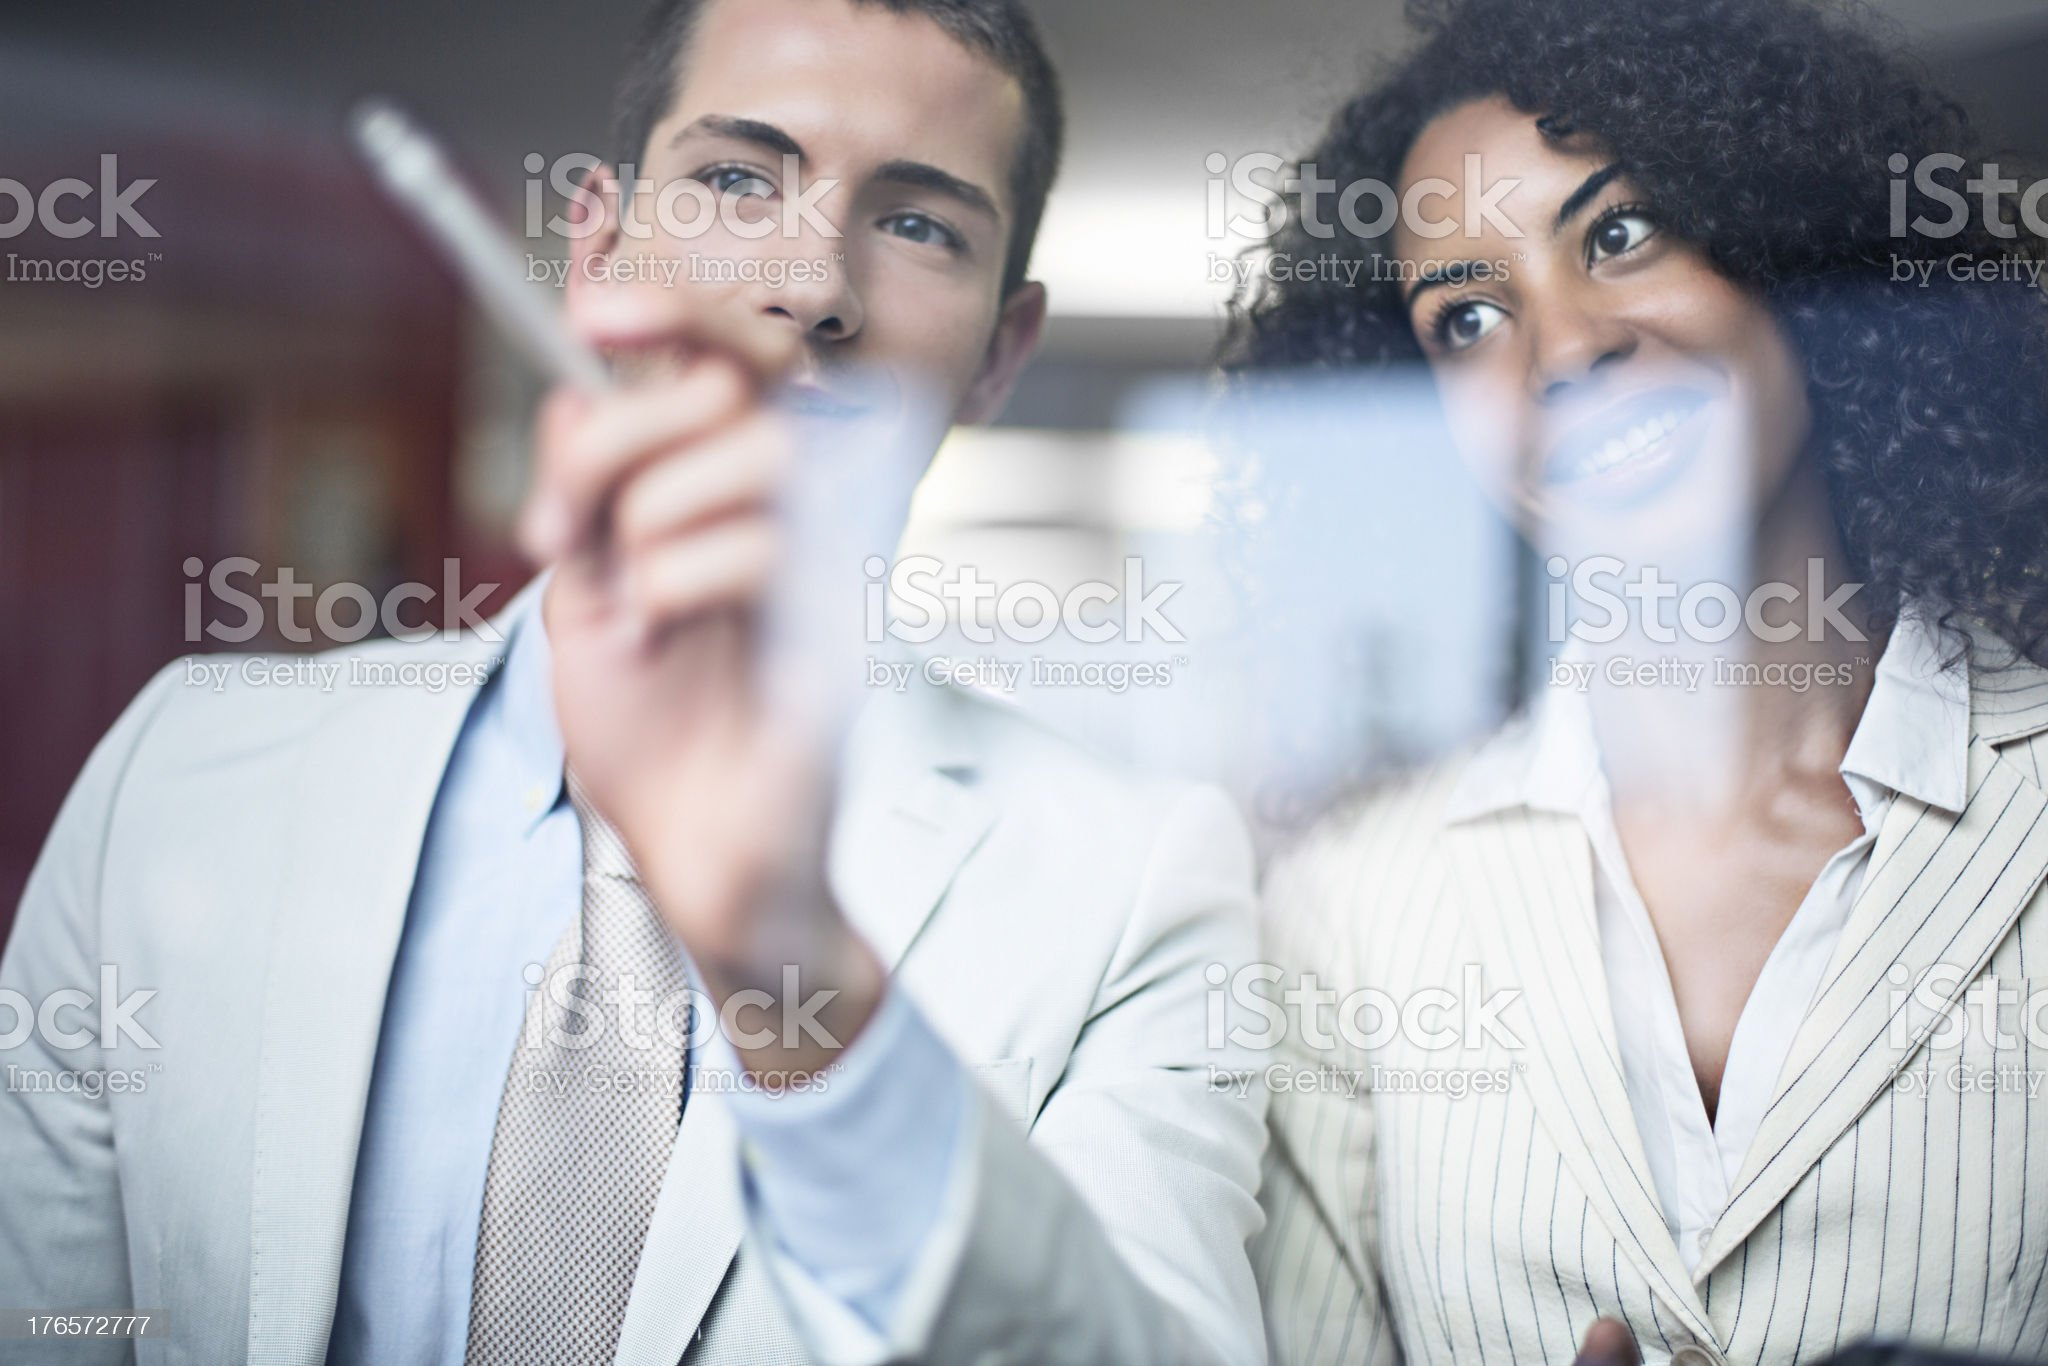 Working reflections royalty-free stock photo